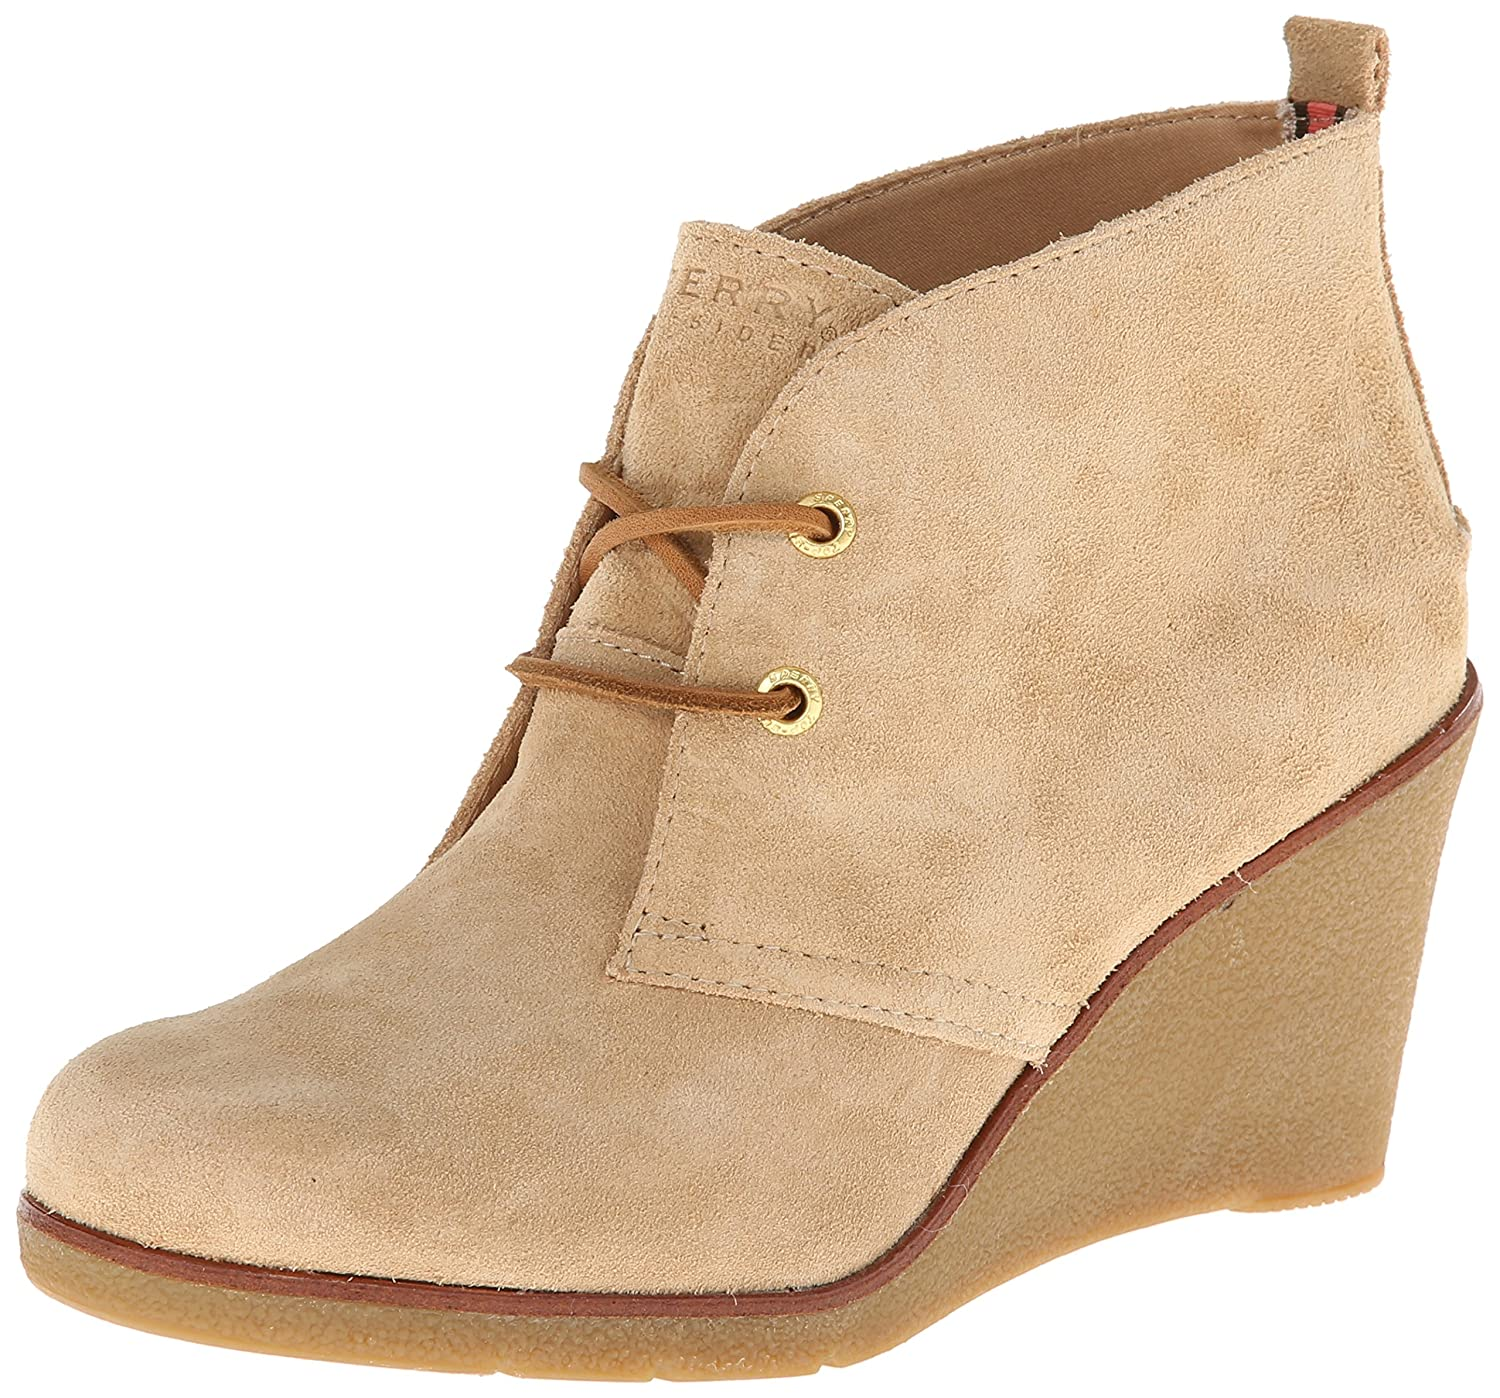 5a55427d8ef Sperry Top-Sider Harlow Boots Sand Suede